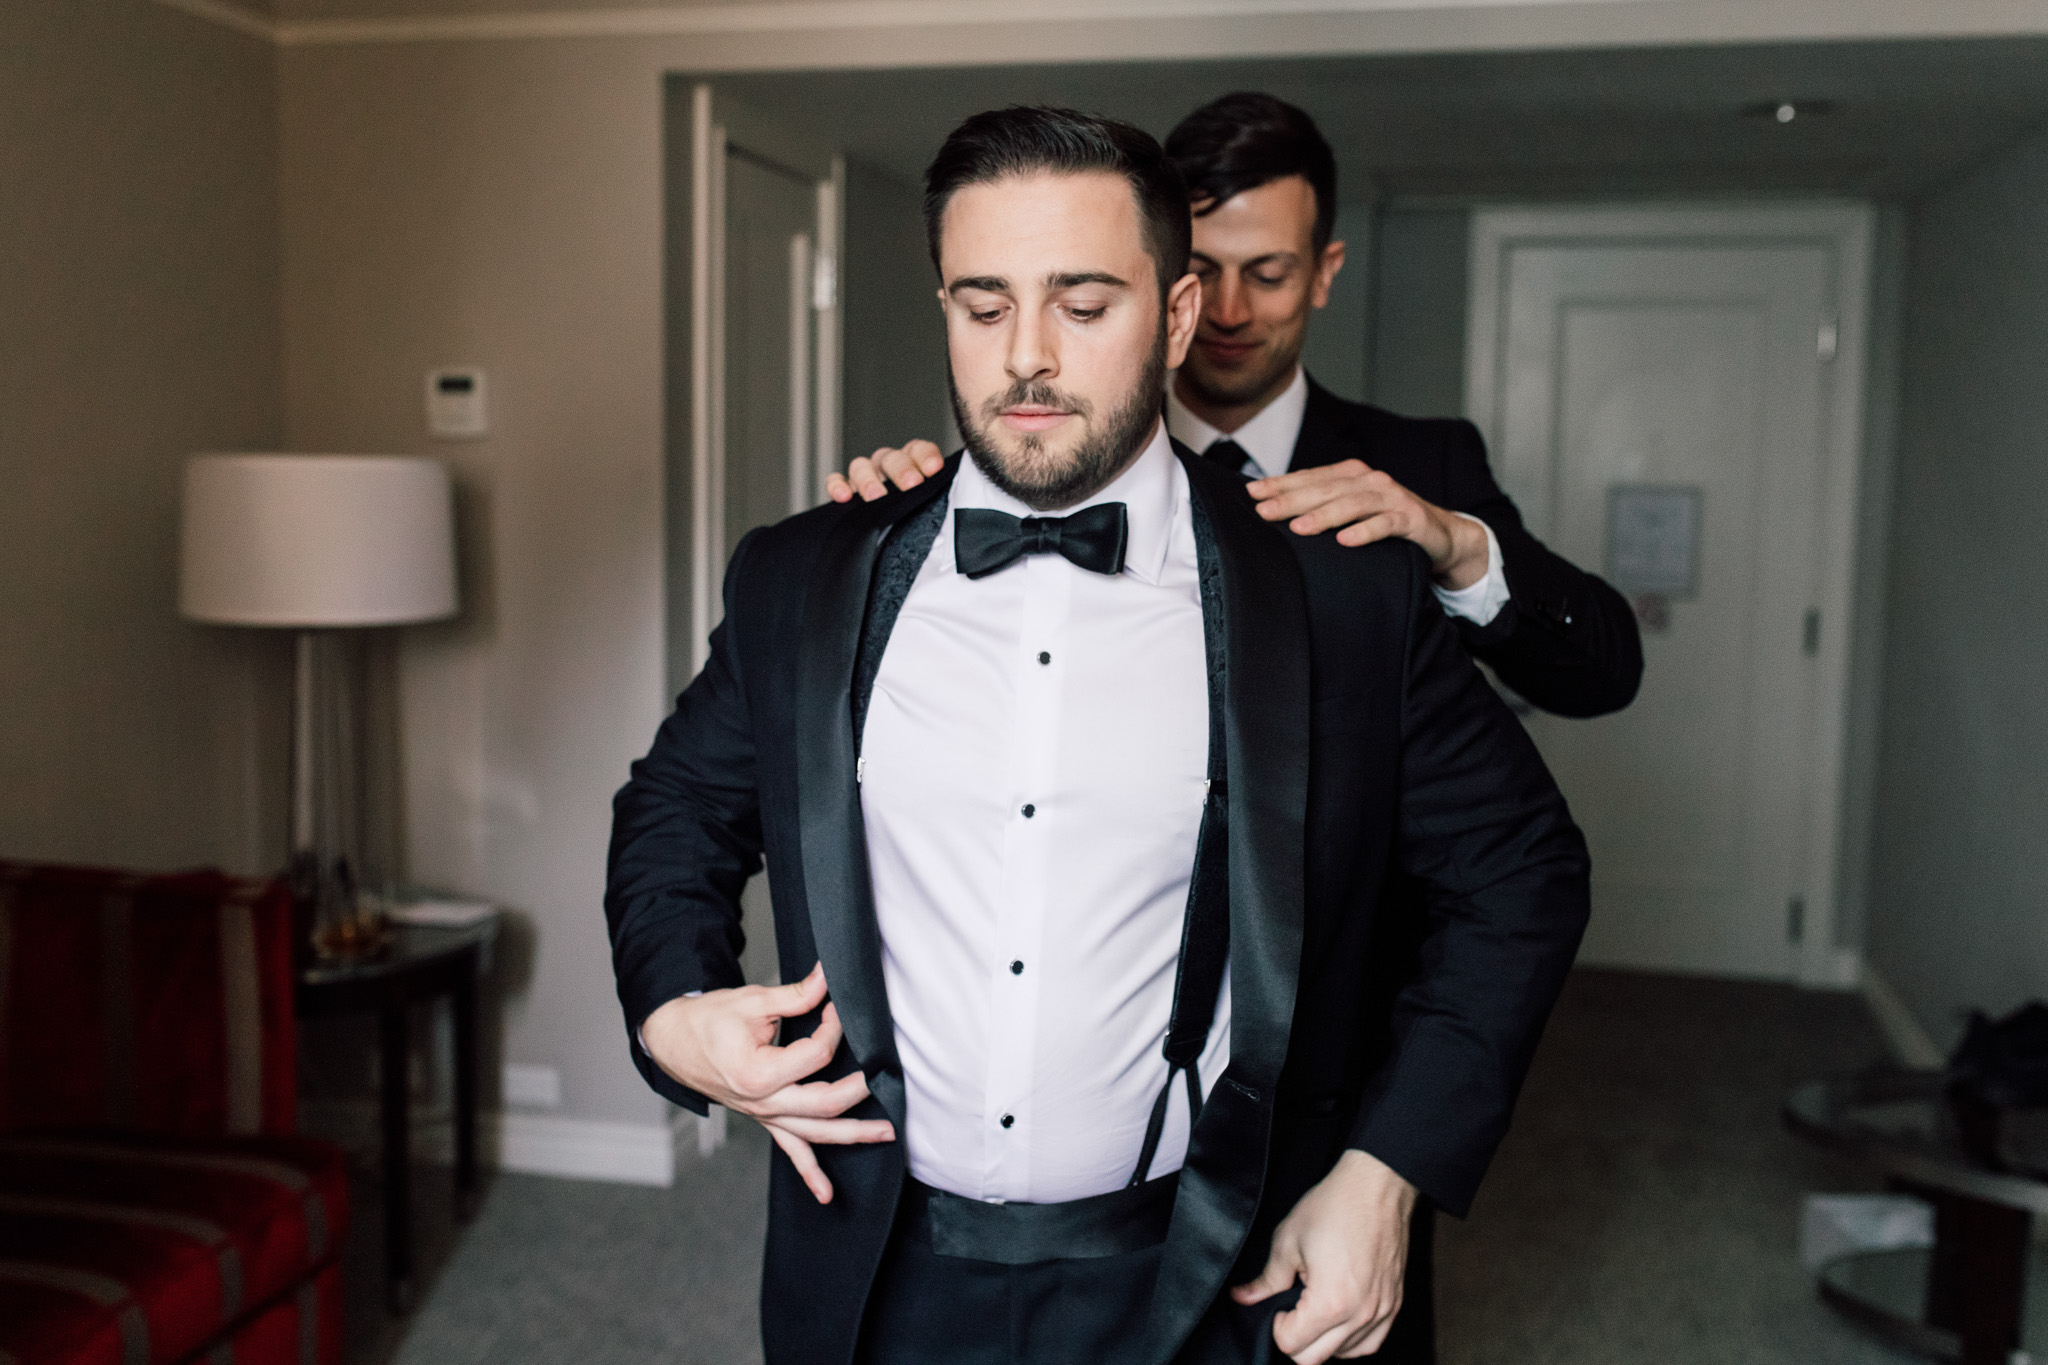 Groom wedding tux